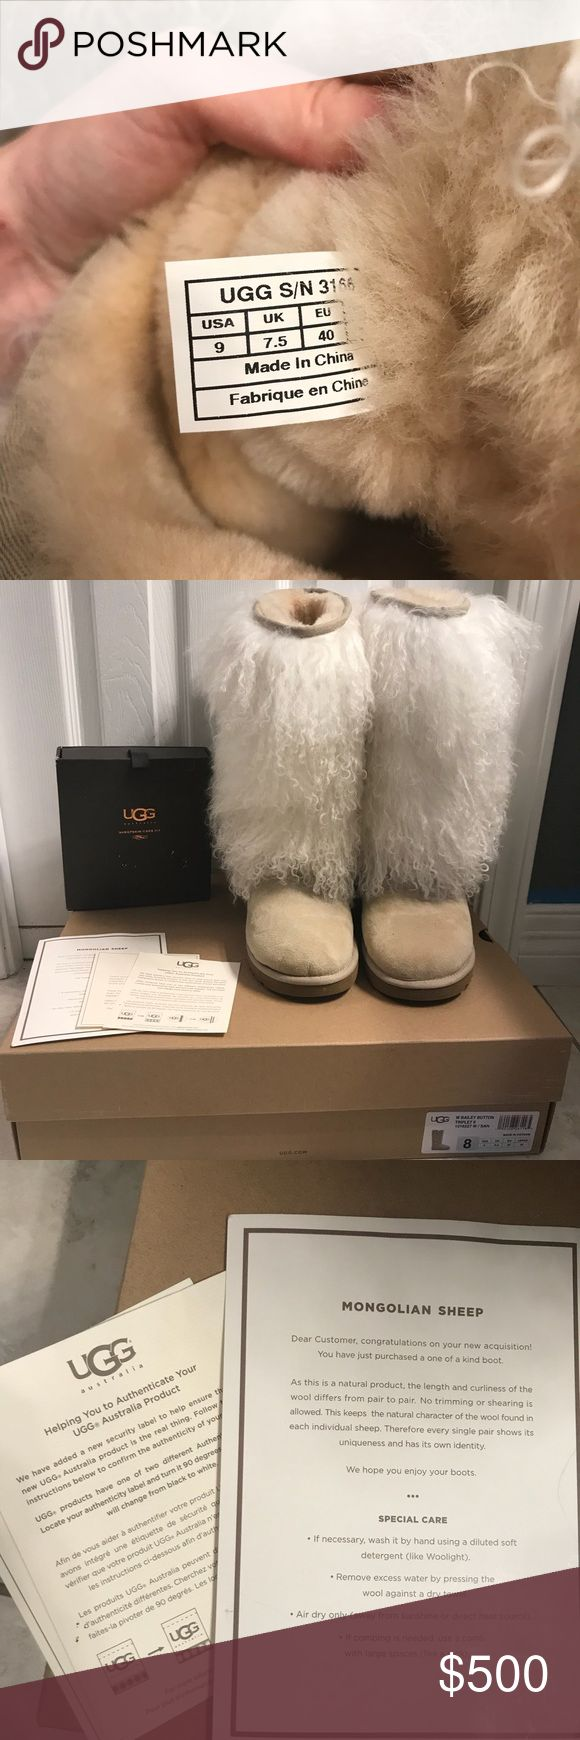 UGG Tall Mongolian Sheepskin White/Tan Boots Size9 These boots are in amazing condition!! They are so gorgeous! They've been worn a couple times since being purchased. I do not have the original box they came in but will send in a different UGG box. They are size 9 and fit a size 9 or 8 sized foot. I typically wear 8s but this still fit good. Also comes with care cards on how to care for the fur and a fur care kit. Asking $400 through 🅿️🅿️ but I'm open to offers ❤️ UGG Shoes Winter & Rain…